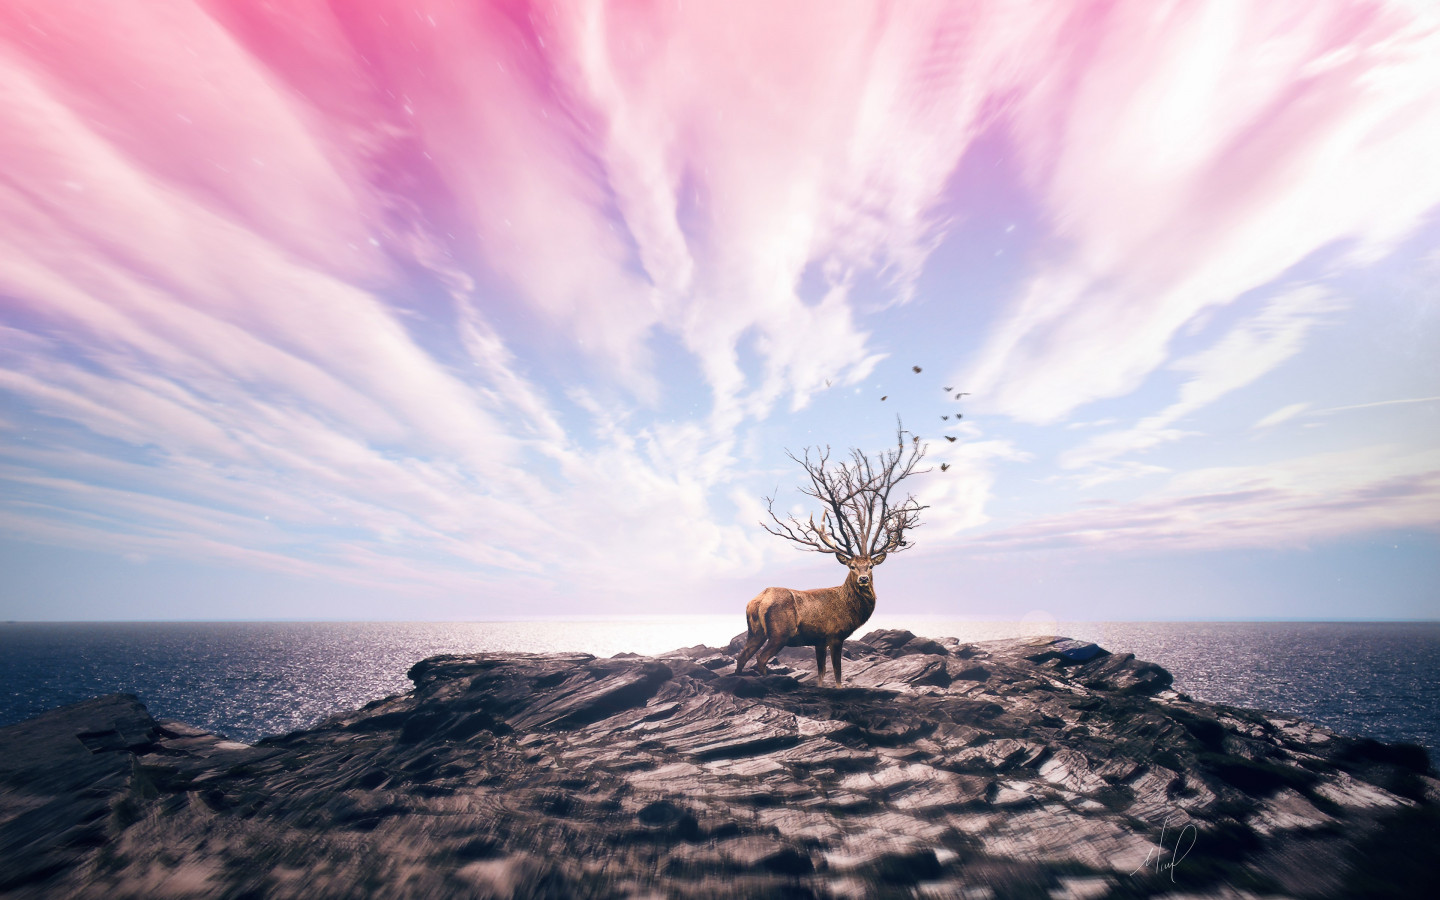 Digital art with deer wallpaper 1440x900